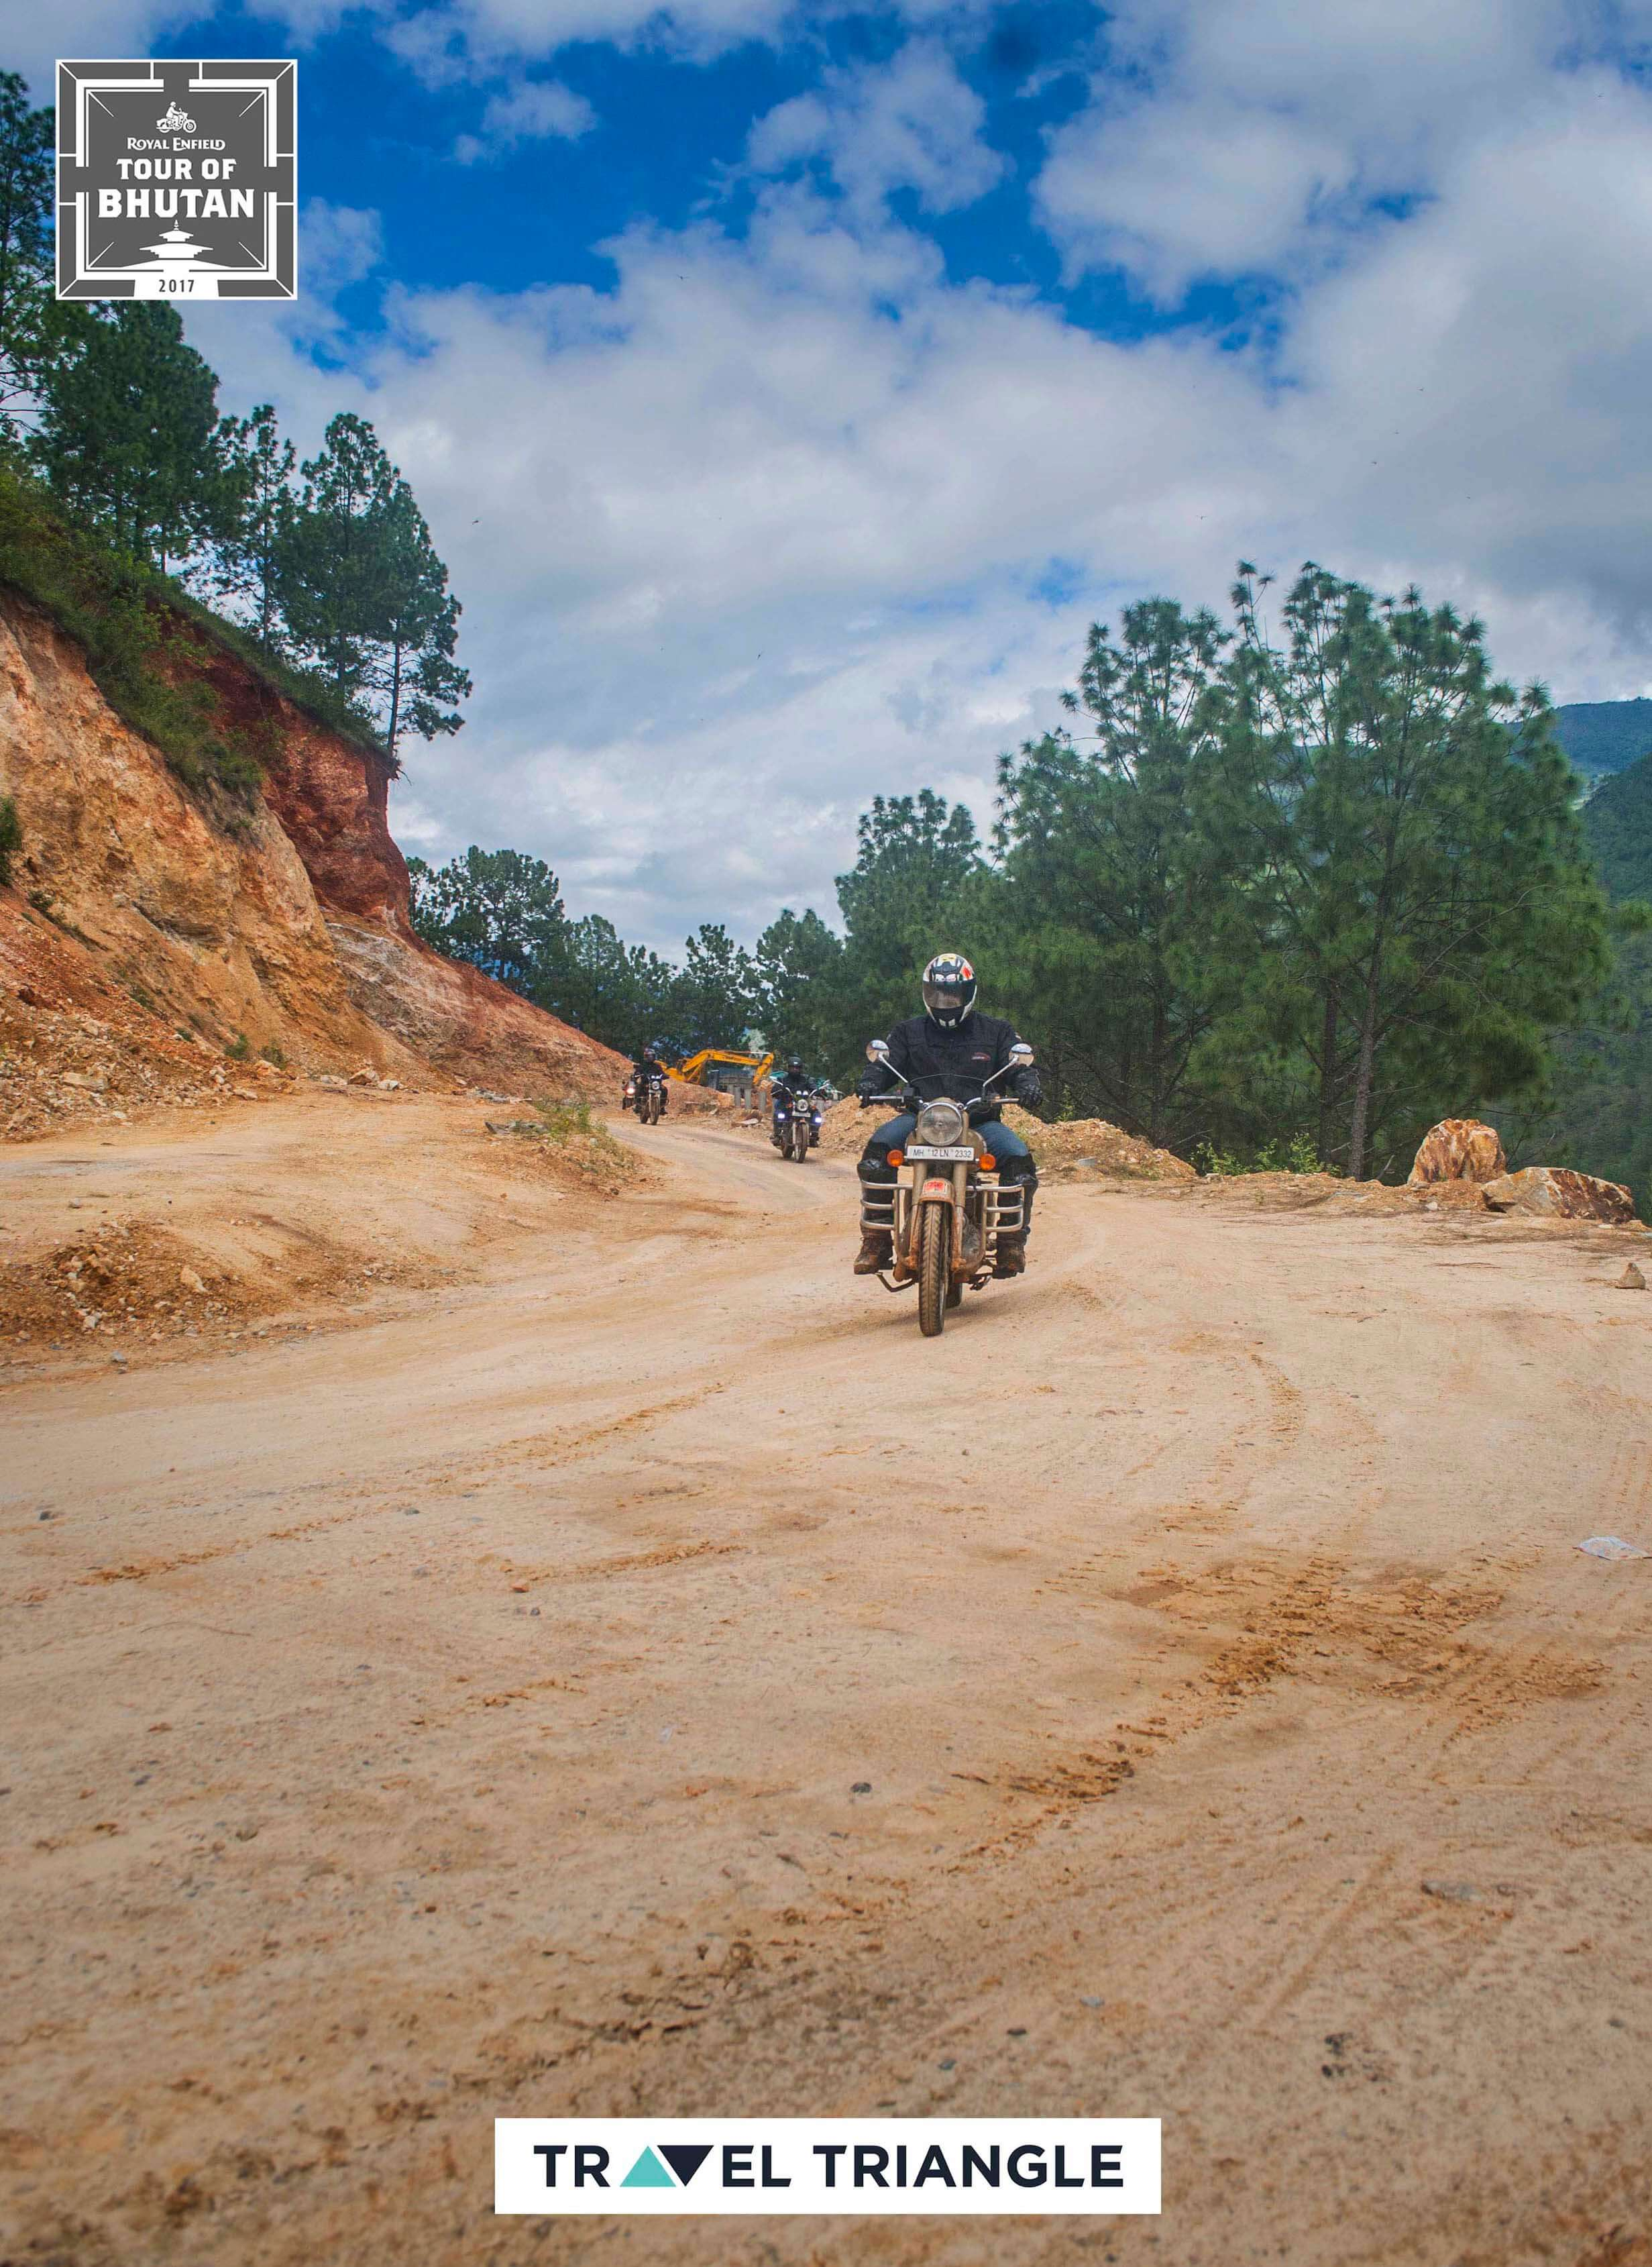 Mongar to Trashigang: a rider riding off